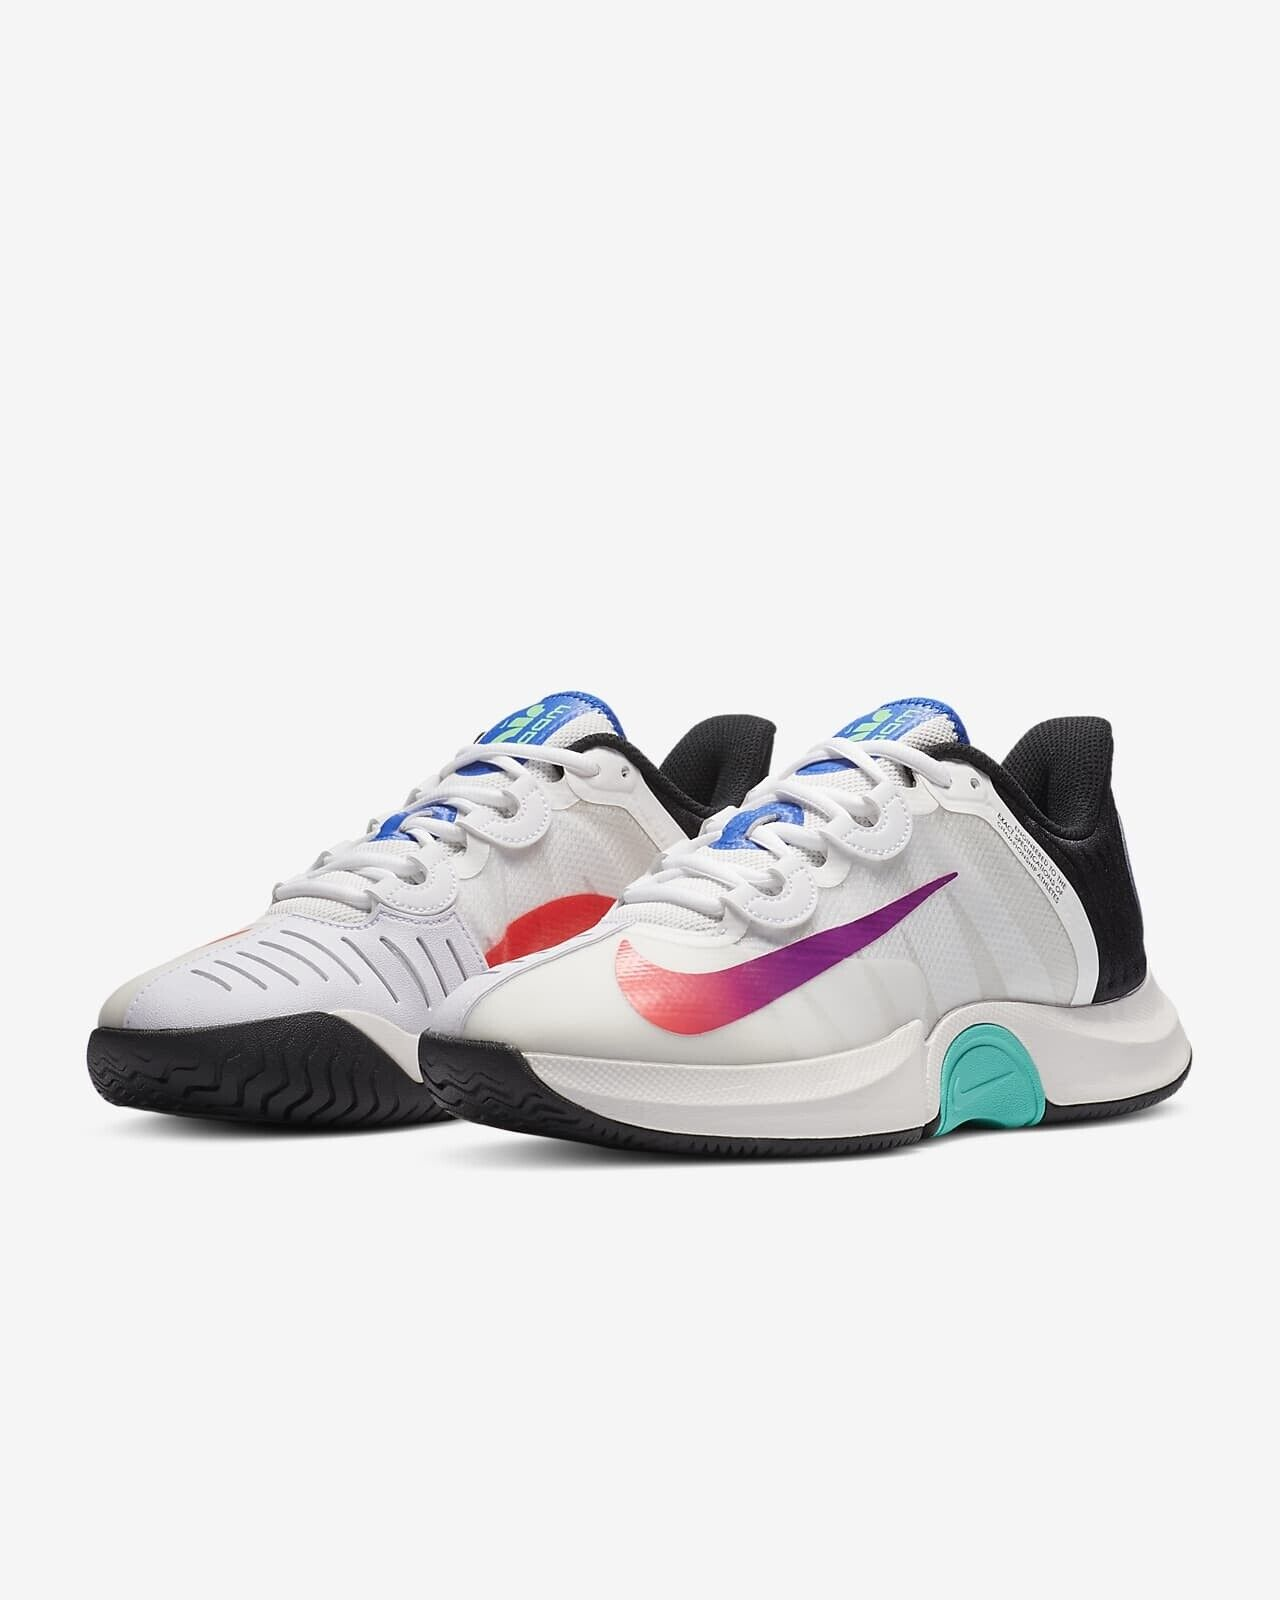 Size 8 - Nike Air Zoom GP Turbo Ombre Swoosh for sale online   eBay